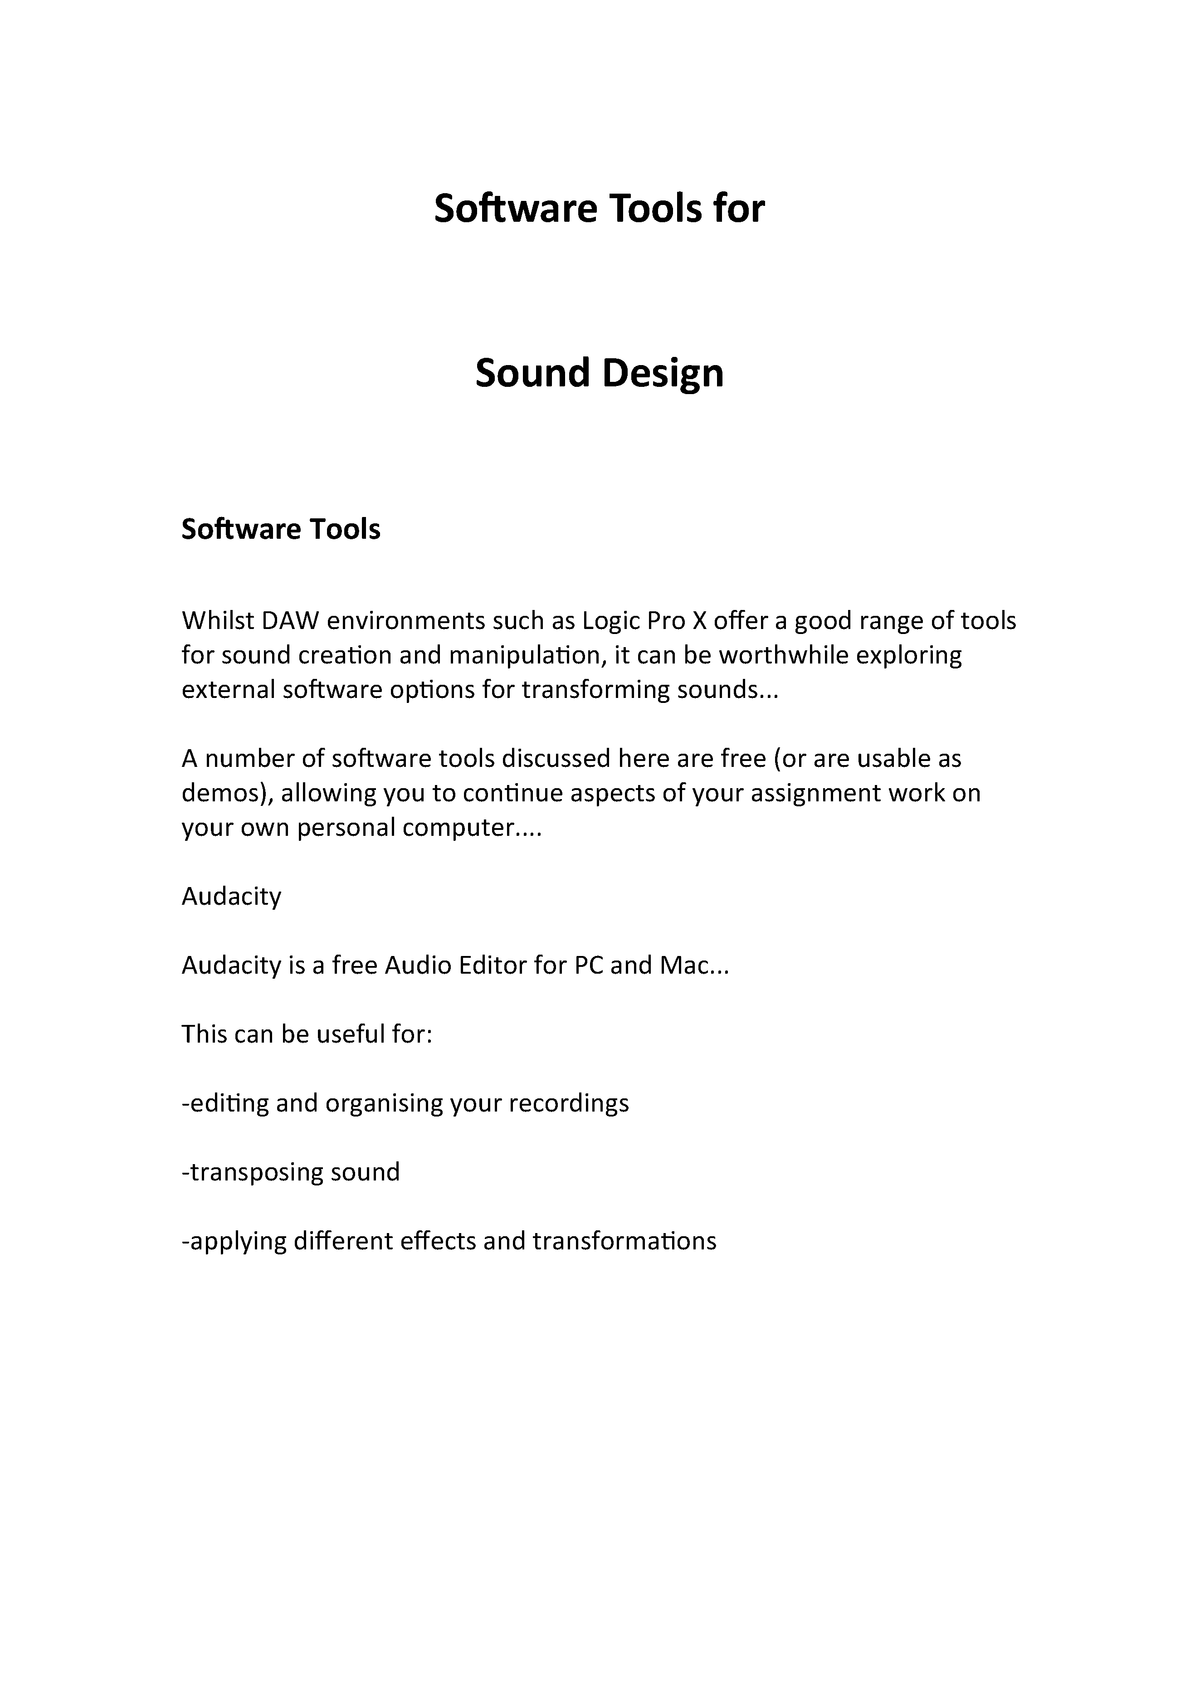 Sound for Moving Image Term 2 Week 5 Lecture - Software Tools for